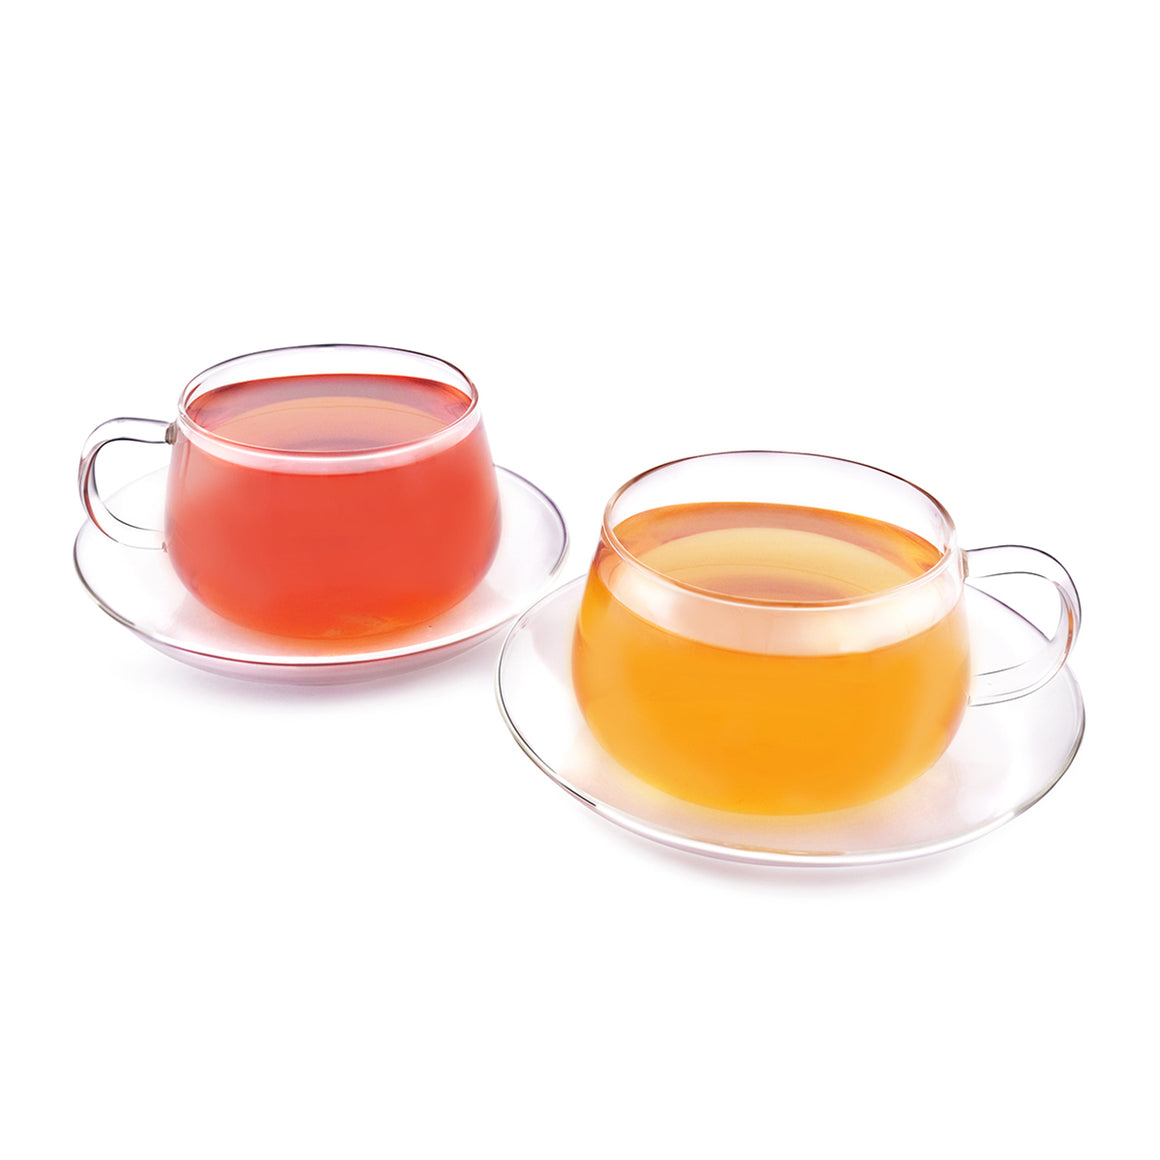 GLITTER - Set of 2 Tea Cup & Saucer Borosilicate Glass, Microwave, Refrigerator & Dishwasher Safe